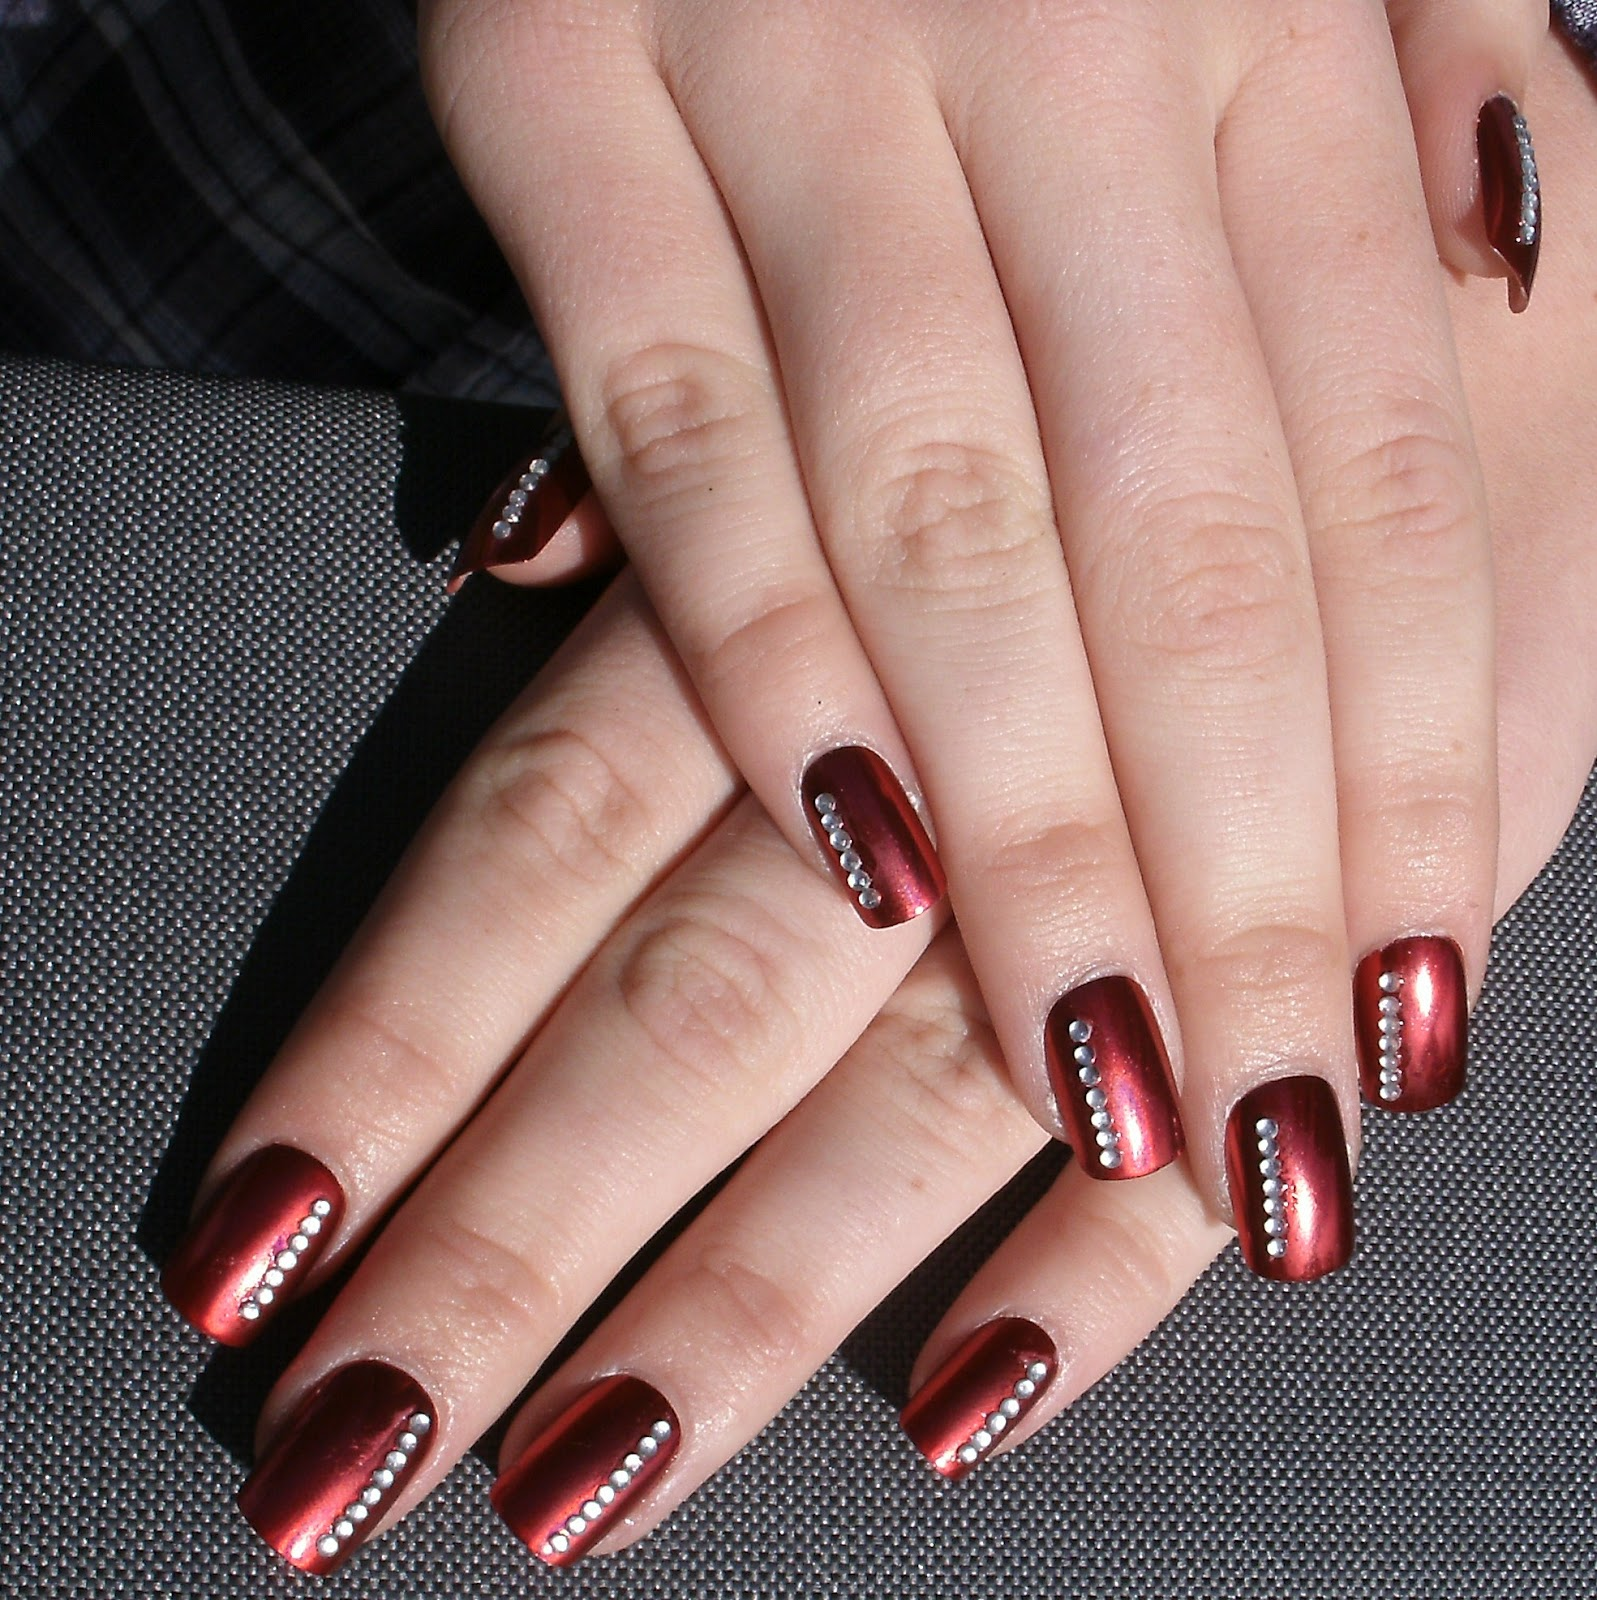 2013 Prom Nail Design Ideas: 20 Burgundy Nail Designs